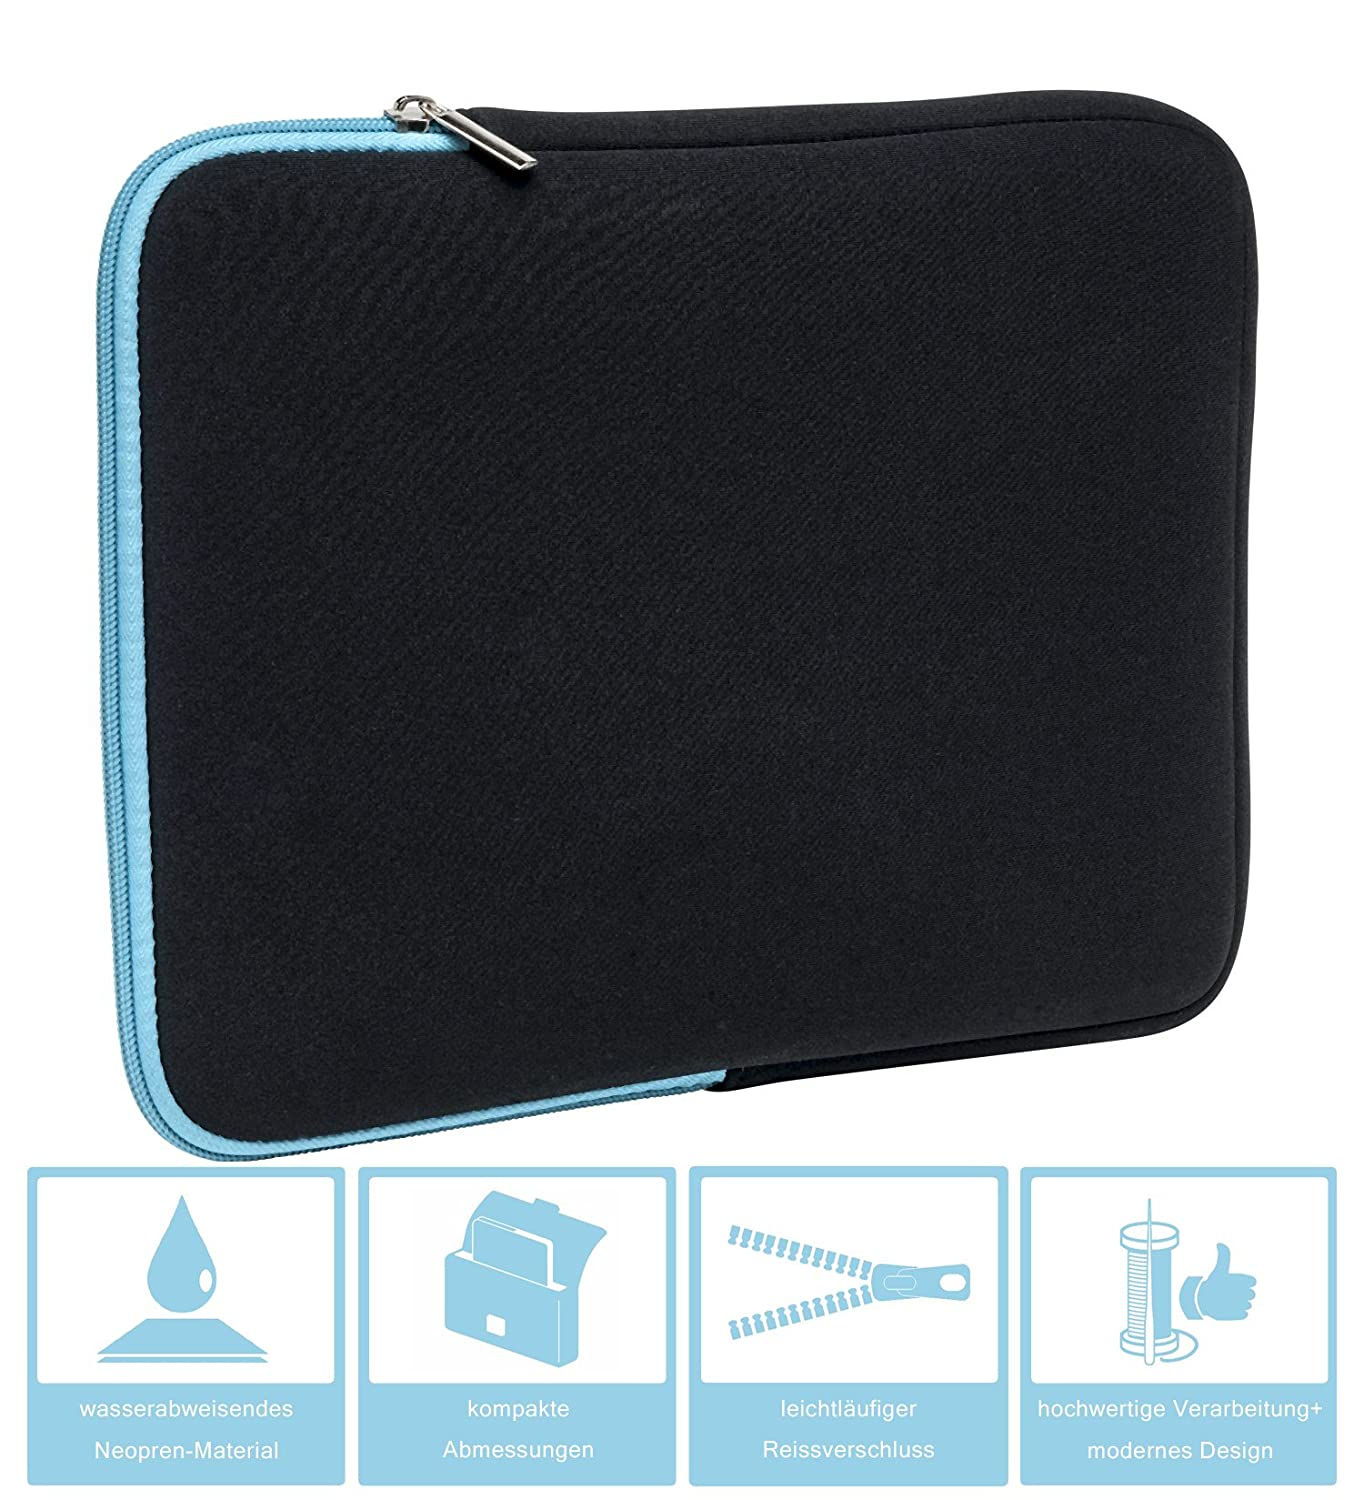 TURQUOISE//BLACK Bag Protective Cover made of neoprene 7th Generation - 2017 Slabo Tablet Case Cover for  Fire HD 8 Kids Edition